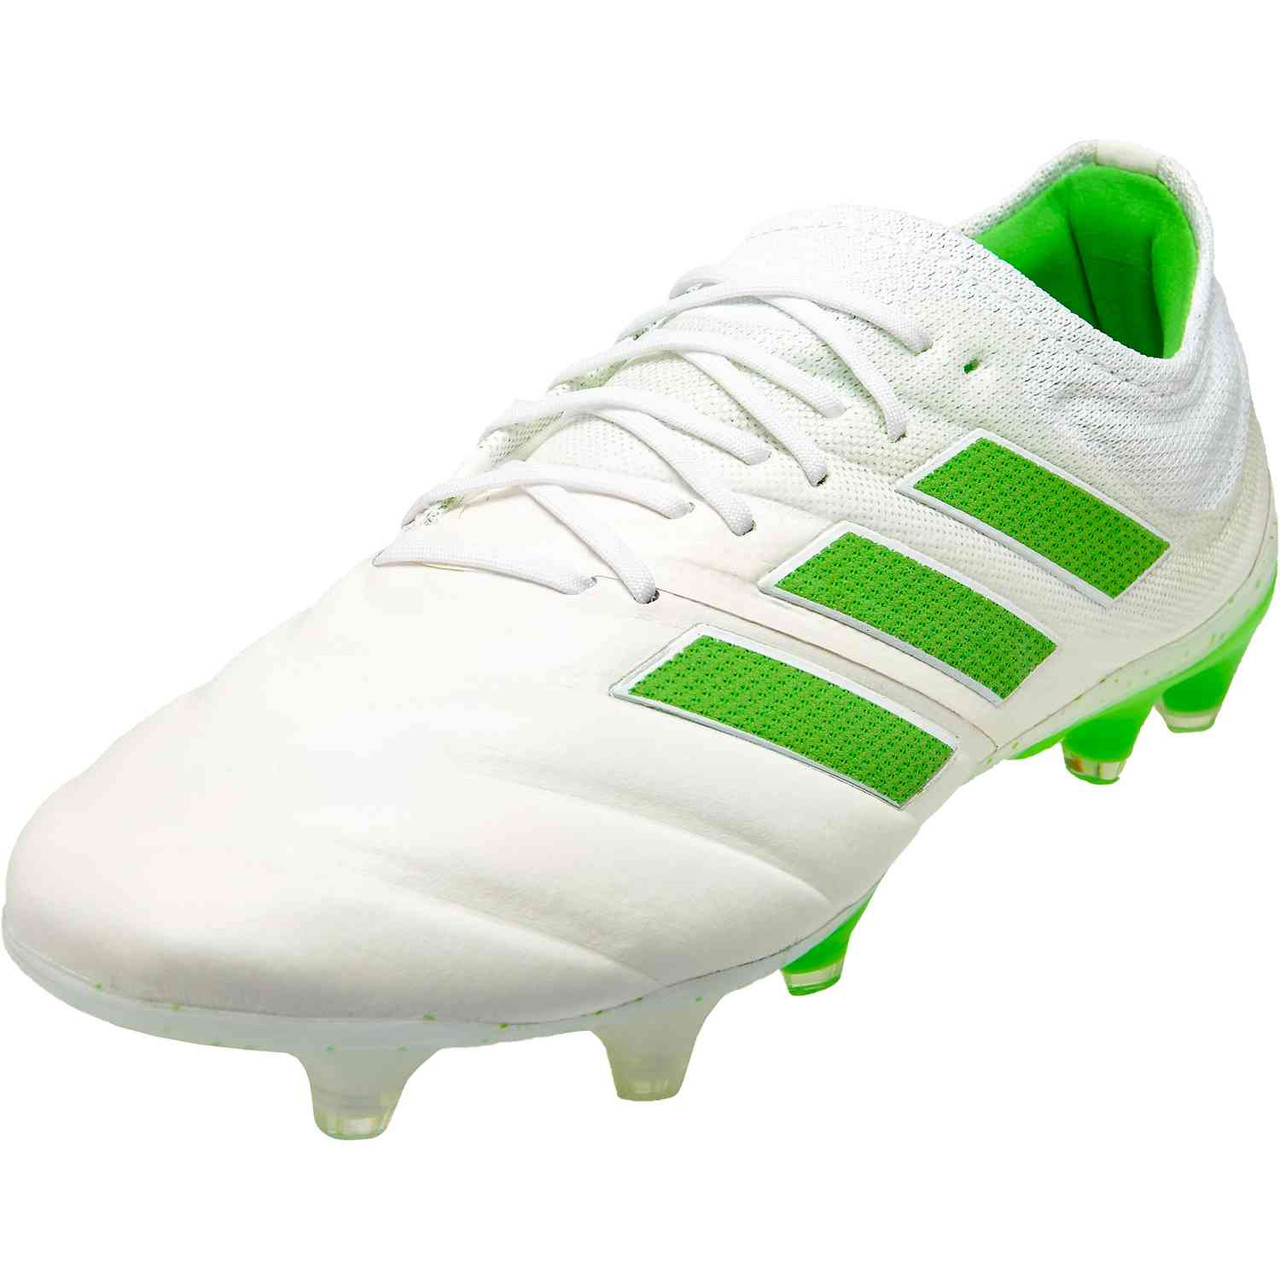 ccdde16a2 ADIDAS COPA 19.1 FG – Virtuso Pack WHITE GREEN - Soccer Plus